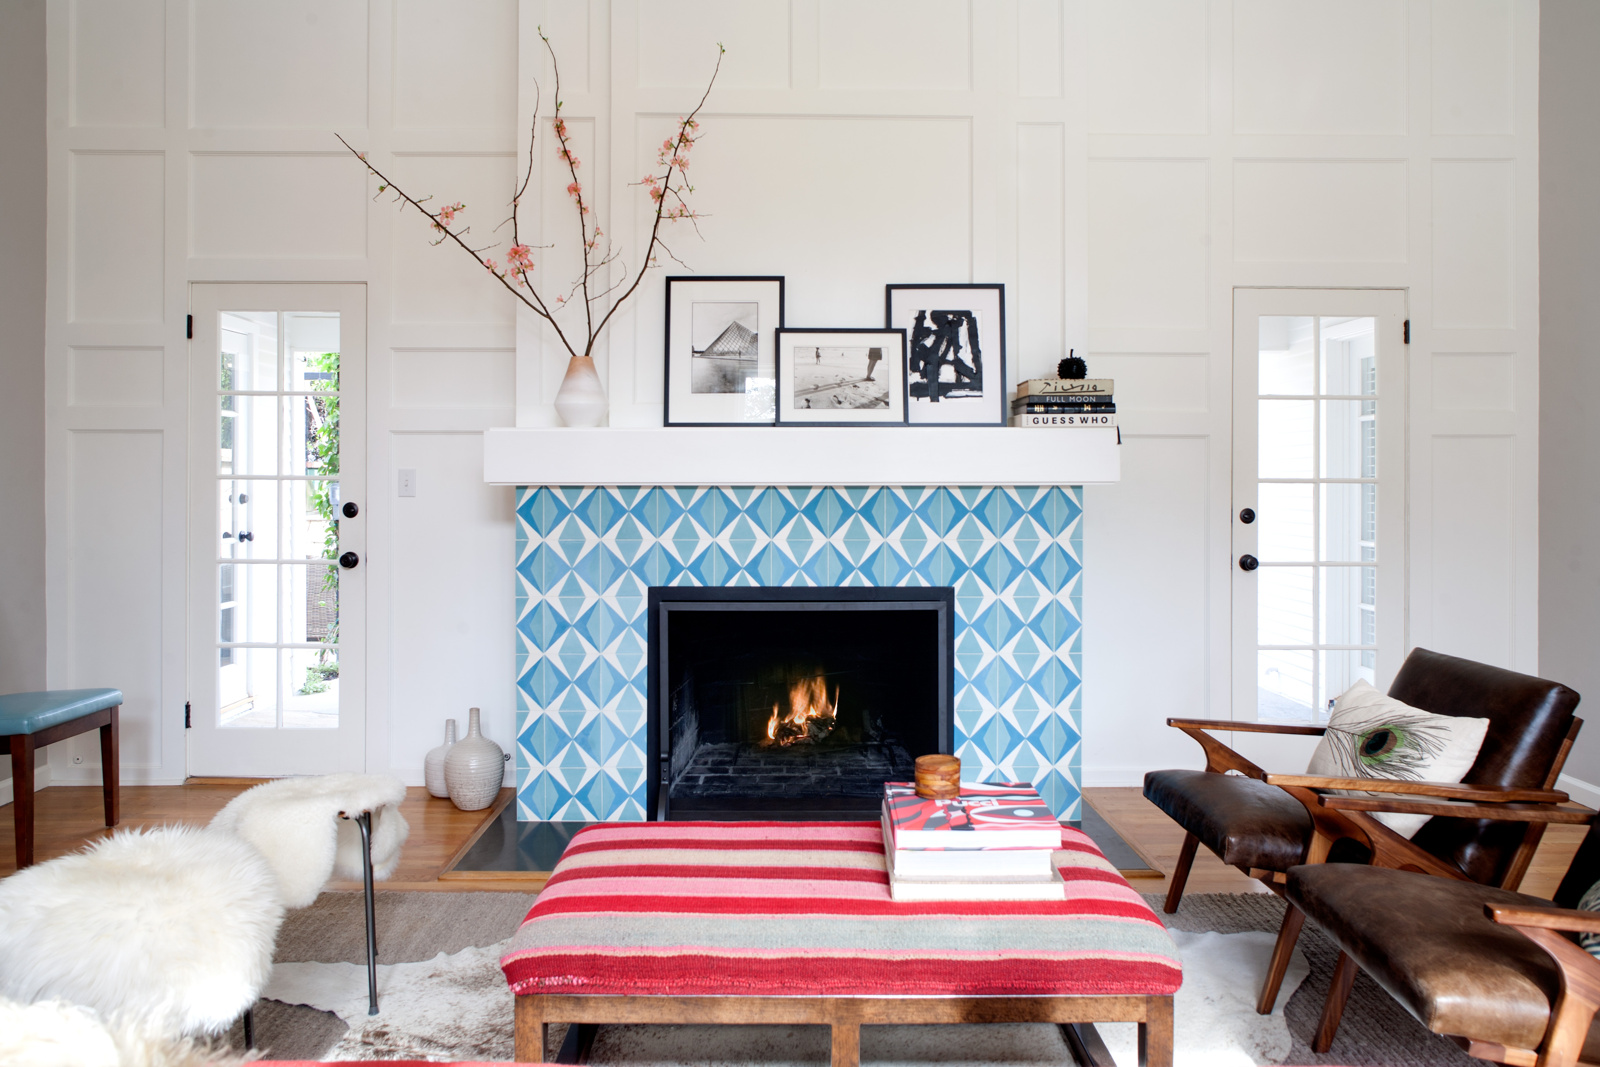 Granada Cement Tiles As Fireplace Tile Are Hot And Cool Granada